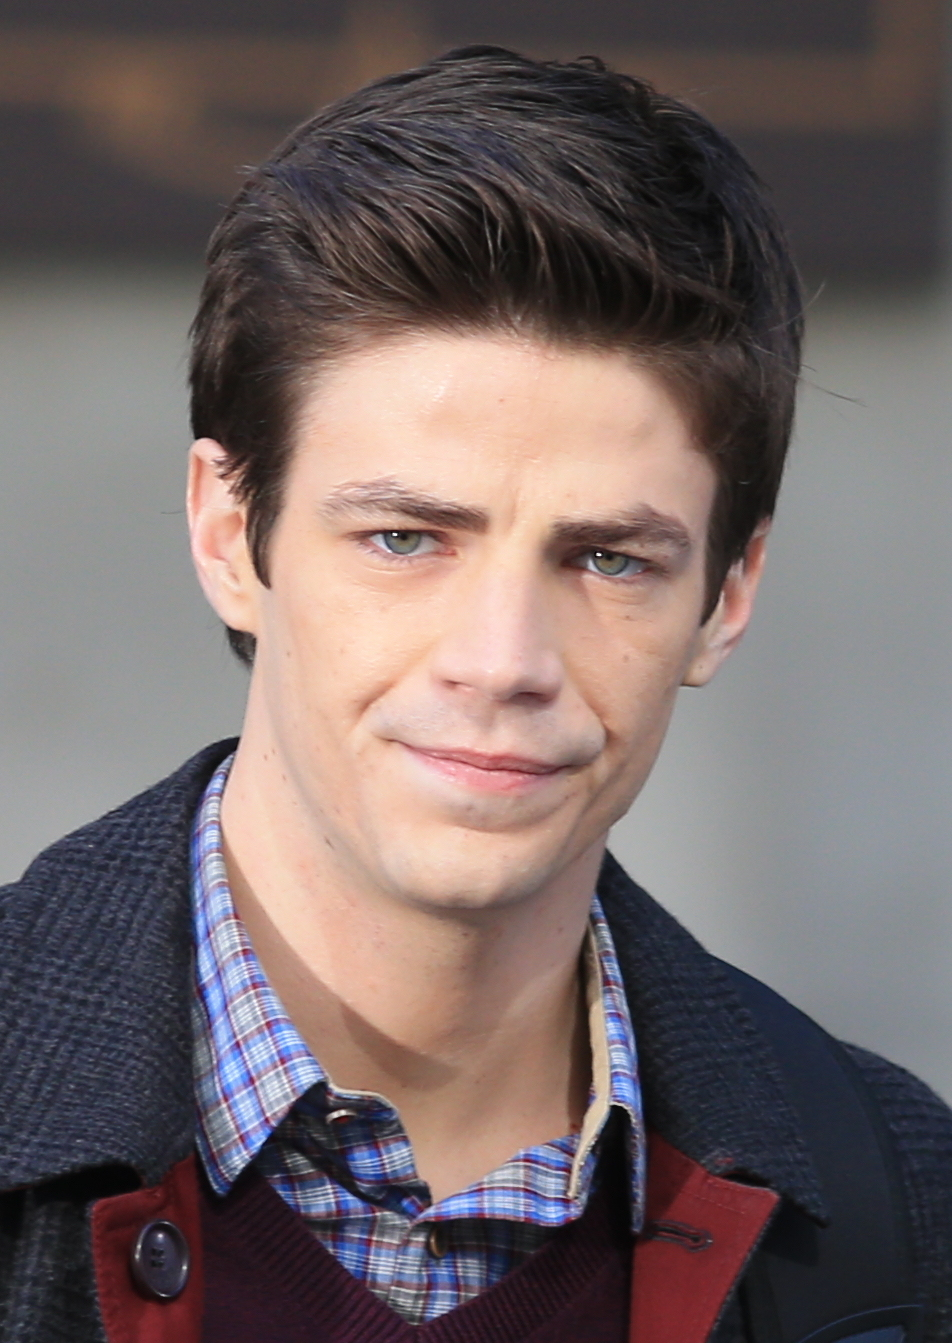 Grant Gustin Simple English Wikipedia The Free Encyclopedia